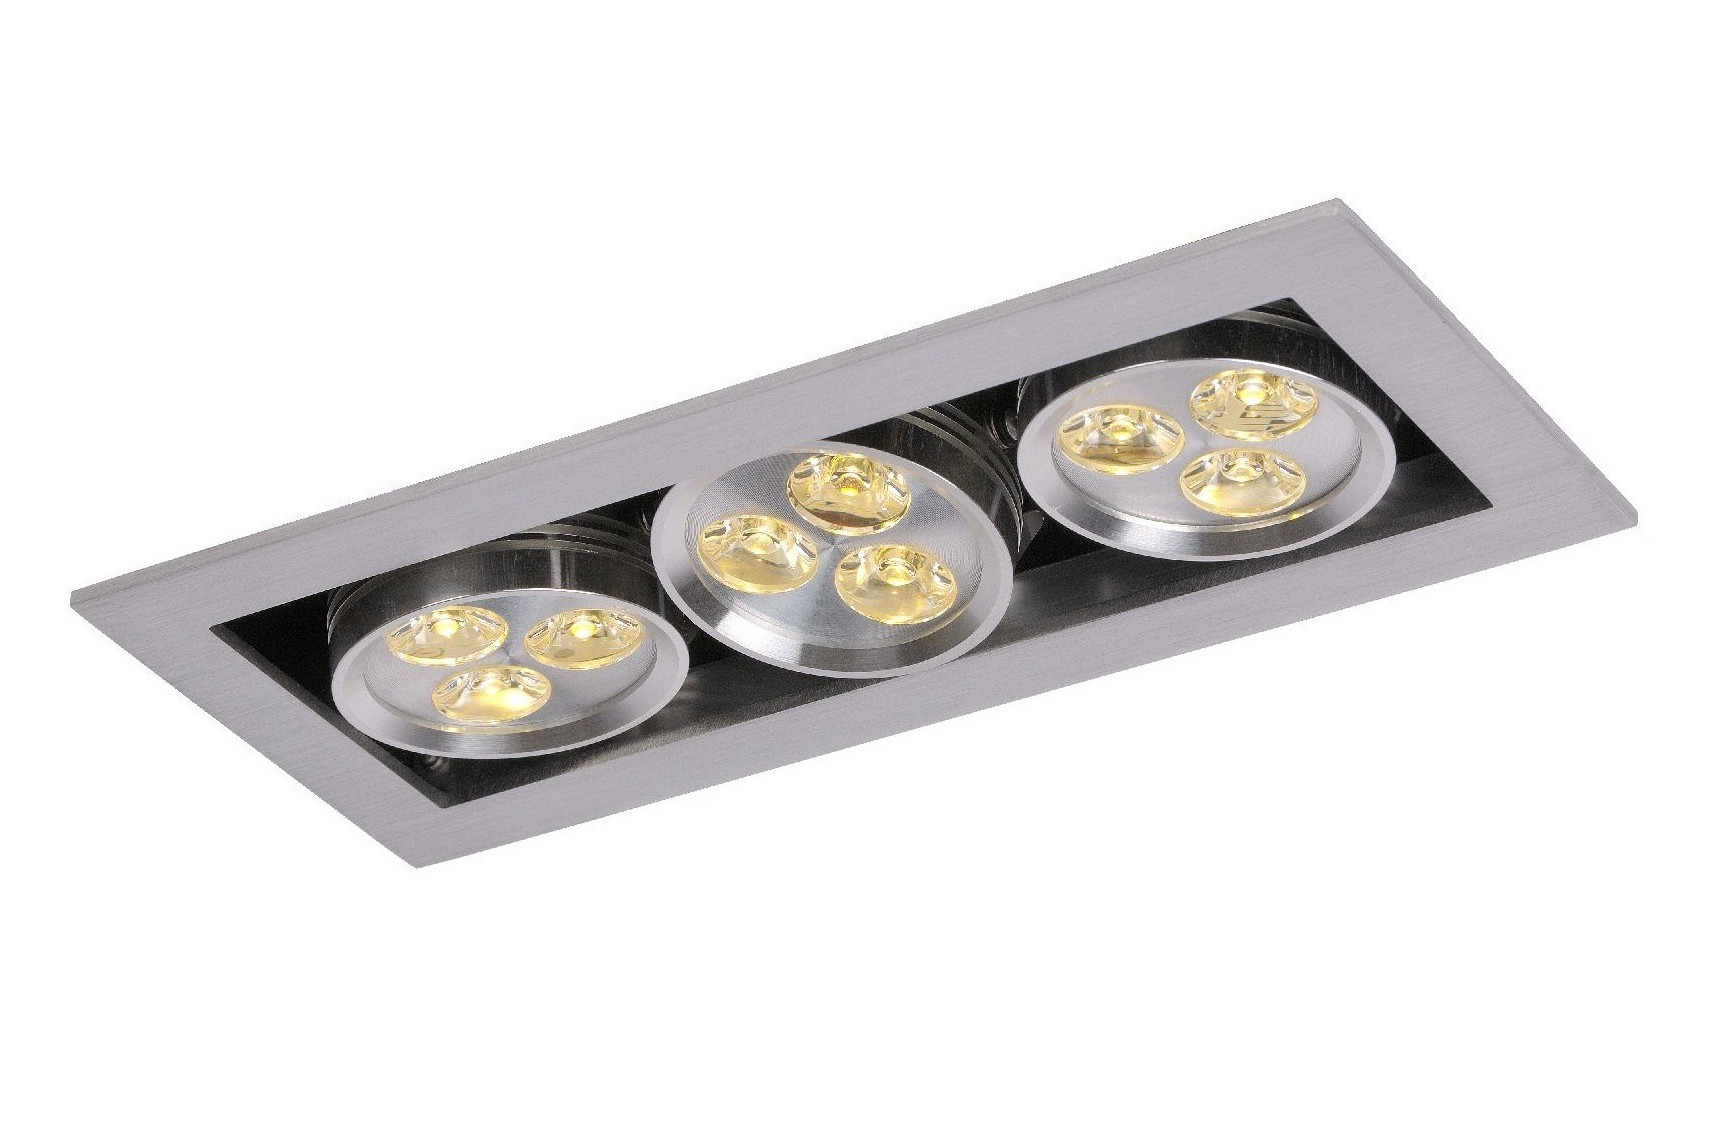 Spot led encastrable plafond cuisine awesome spot led for Spot led encastrable meuble cuisine